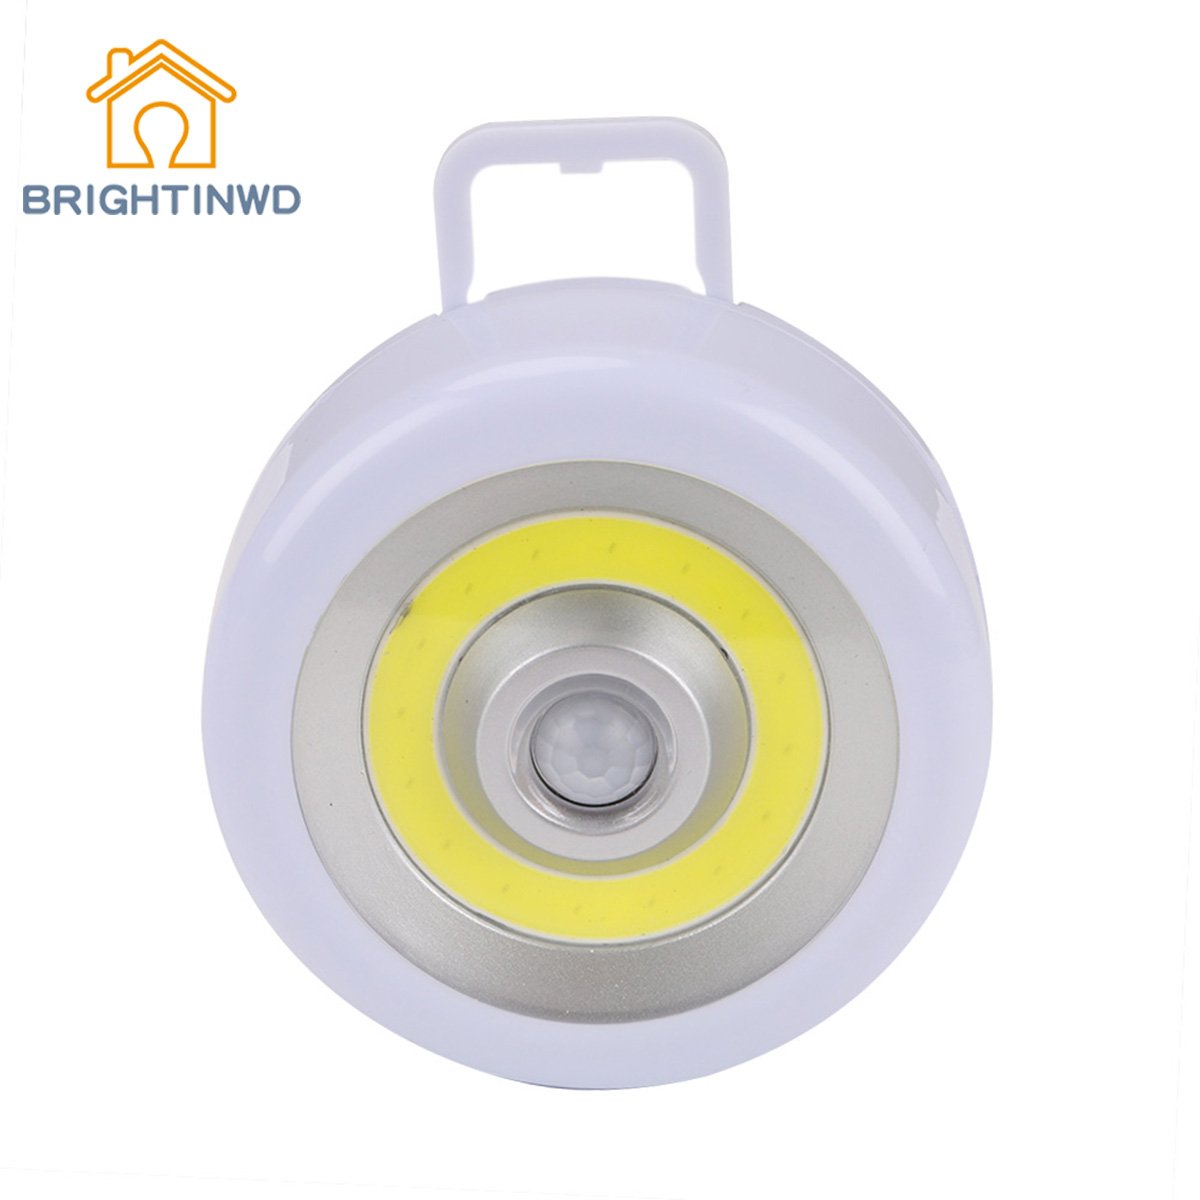 BRIGHTINWD Portable Lantern Wardrobe Light COB LED Camping Hiking Flashlights Torch Light Sensor Night Light Tent Lanterns